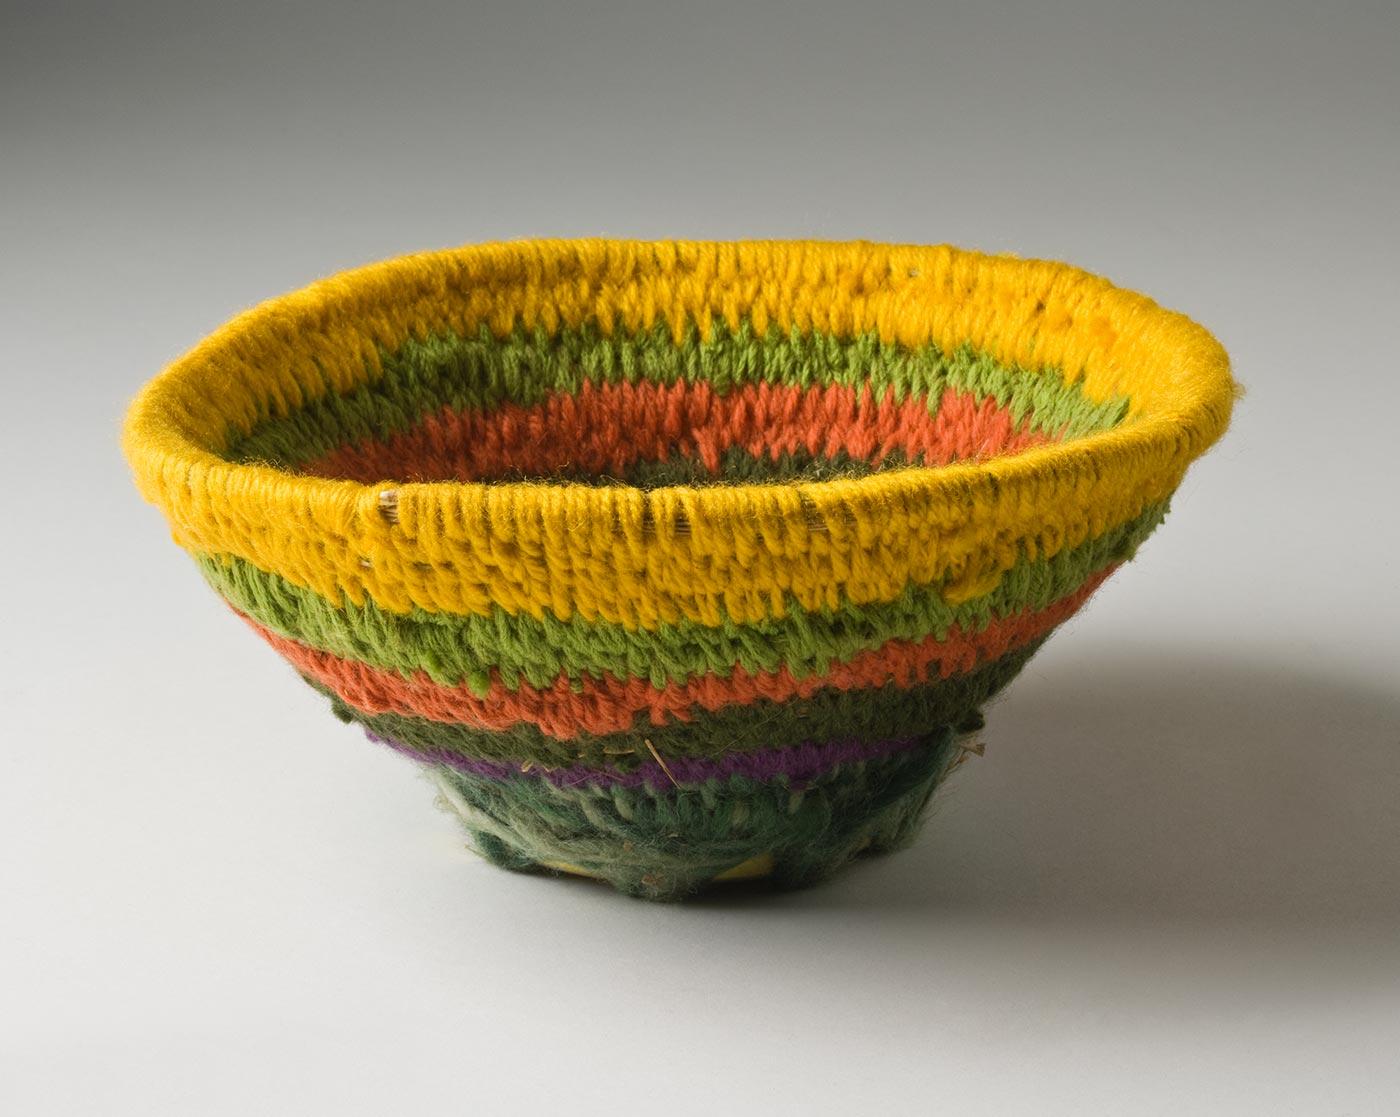 A circular coiled striped yarn basket over plant fibre, with a metal base. The basket has a circular tobacco tin base with text on the back and holes punched around the base. The yarn coiled fibre section is attached with yarn through the holes in the tin, and opens out toward the top. The basket has a stripe of yellow at the top edge followed by green, orange, dark green, purple and white-green. - click to view larger image